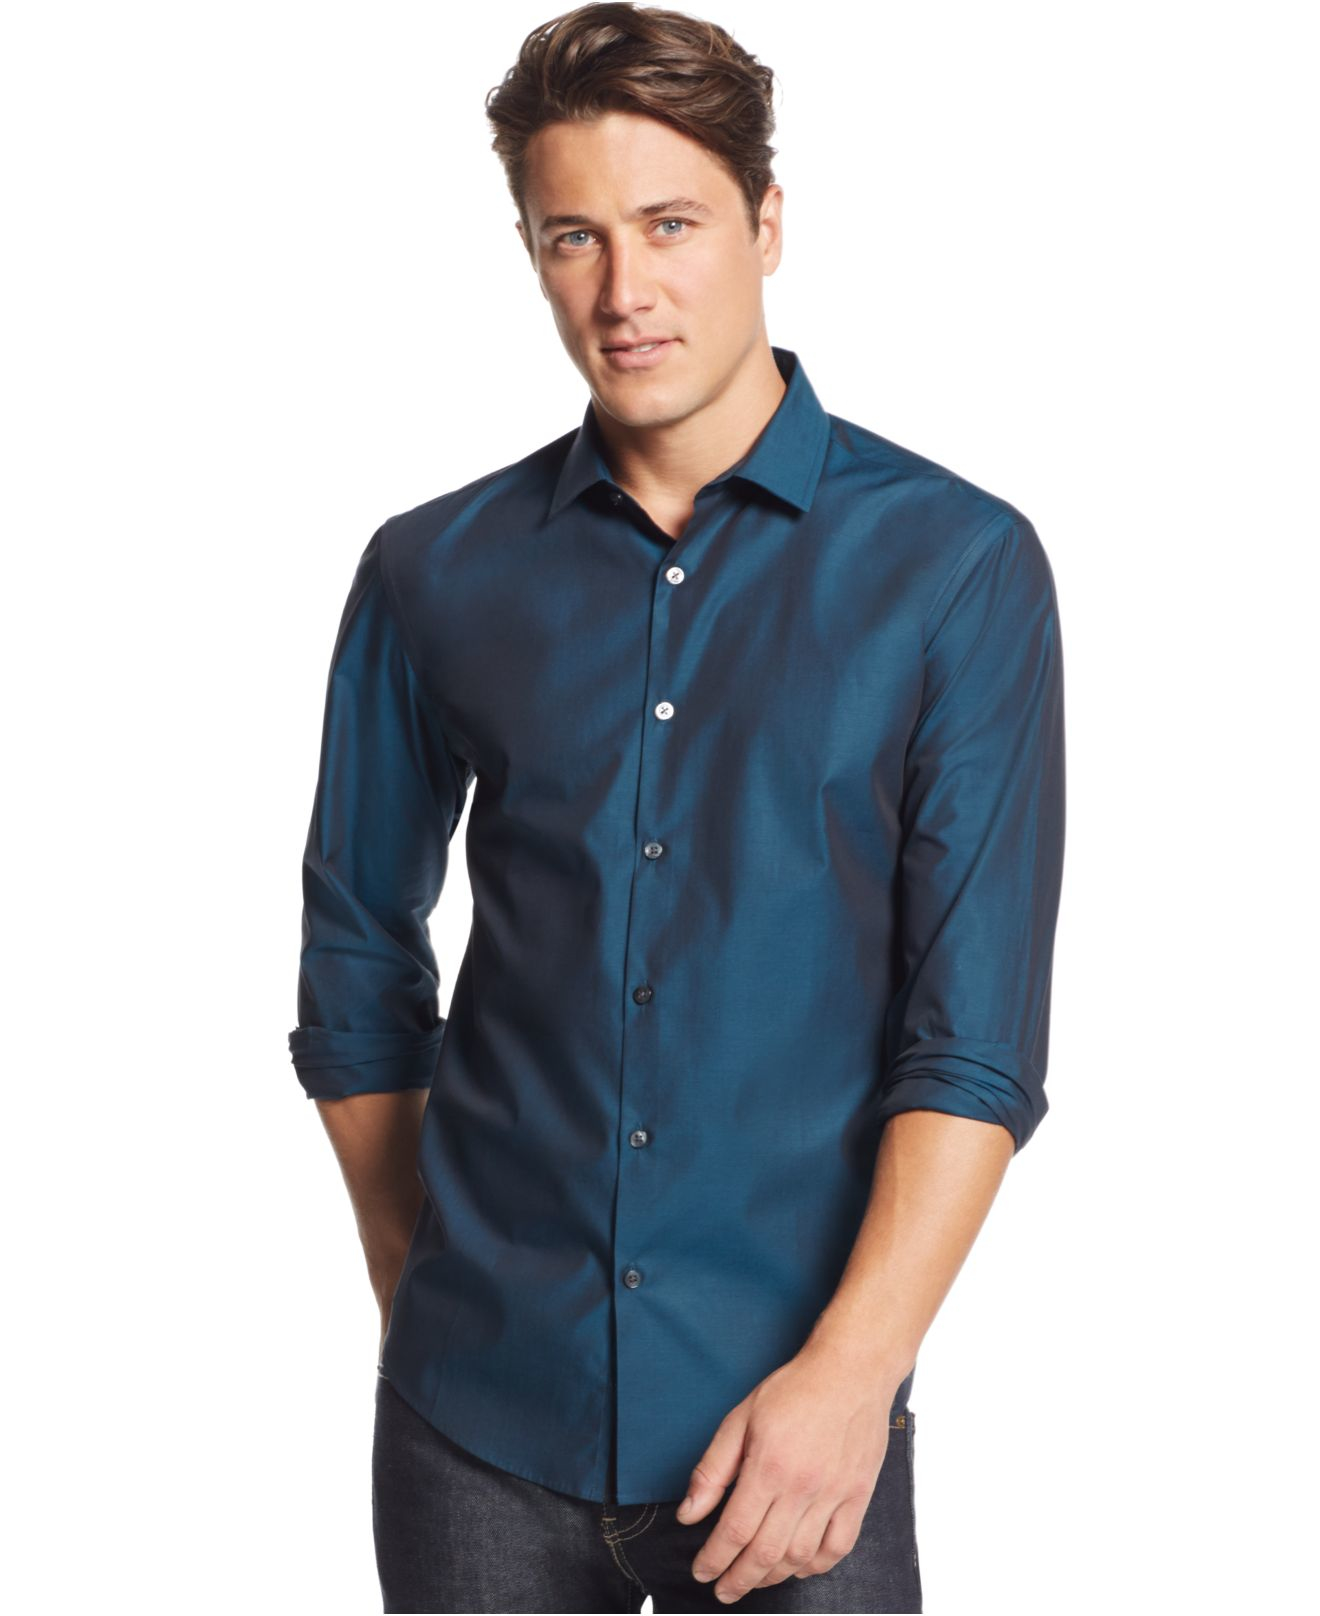 Alfani big and tall verve iridescent shirt in blue for men for Dress shirts for tall men